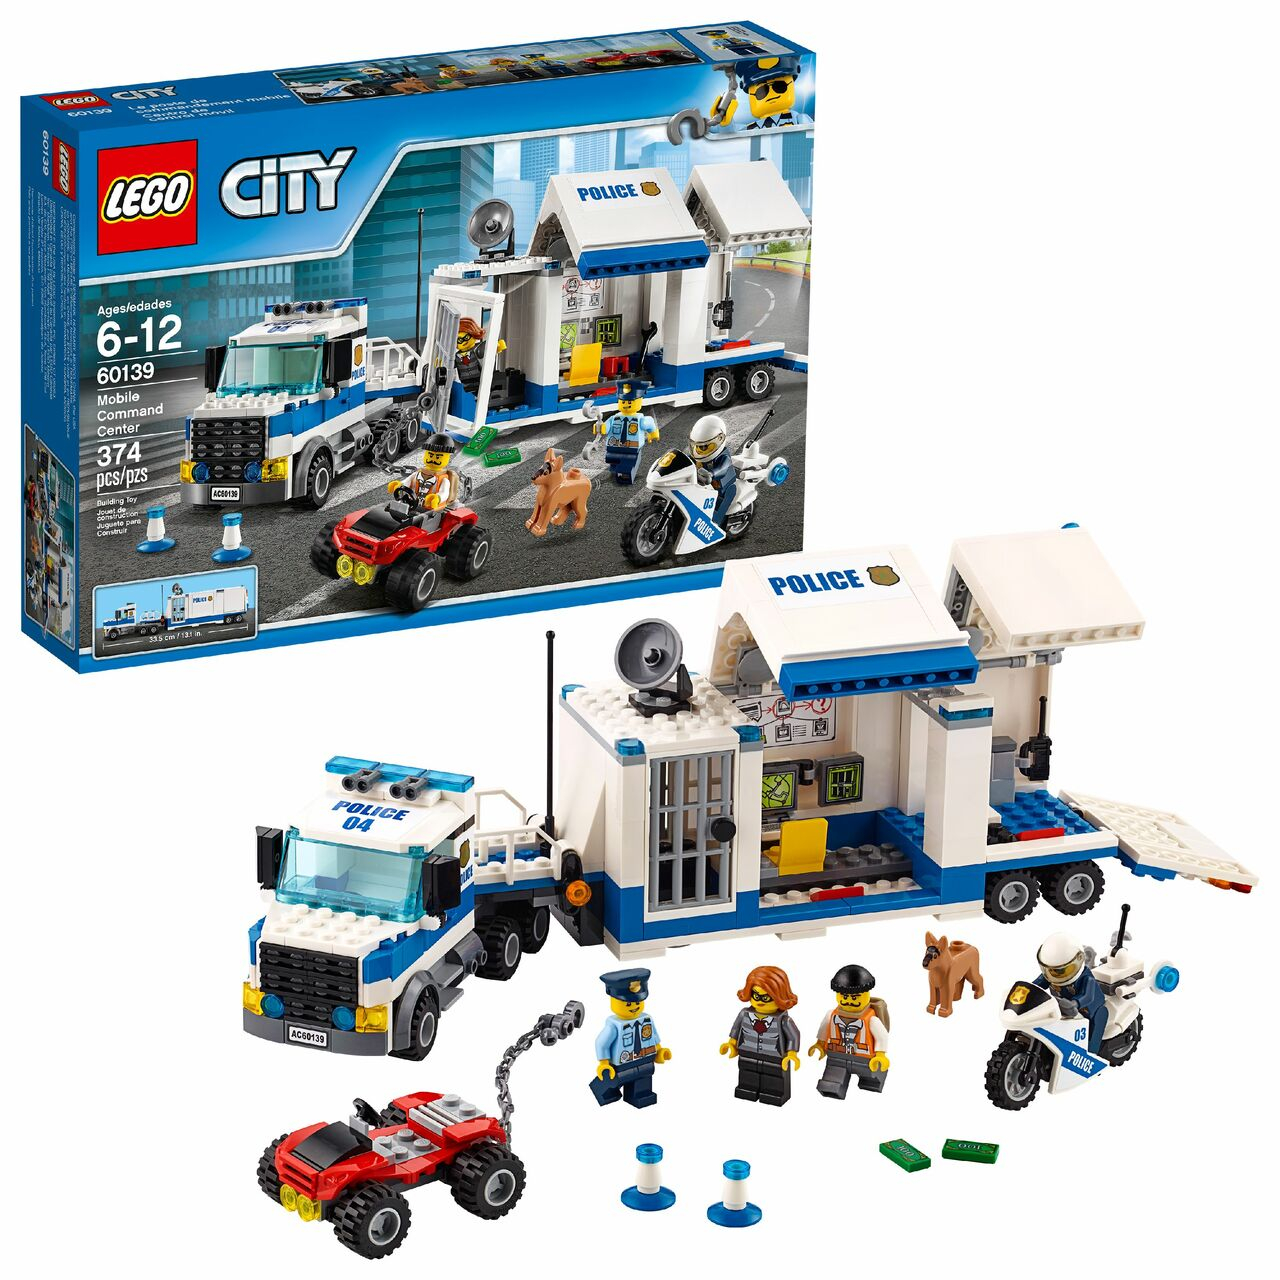 lego city police mobile mand center building toy kids 374 pieces construction blocks build wlm8